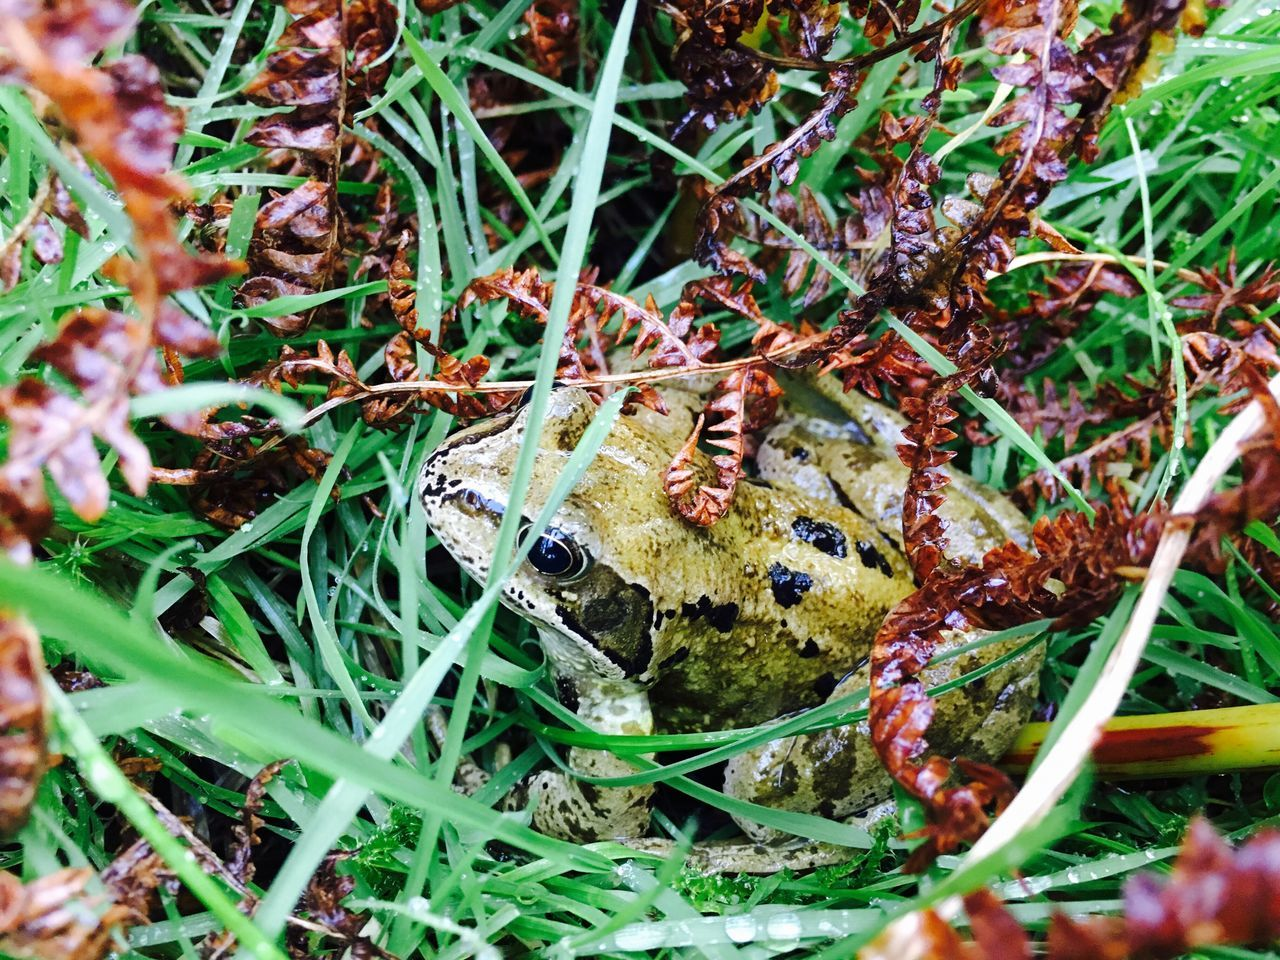 Frog Nature Animals In The Wild One Animal Outdoors Grass Beauty In Nature Close-up Green Color Green Amphibian